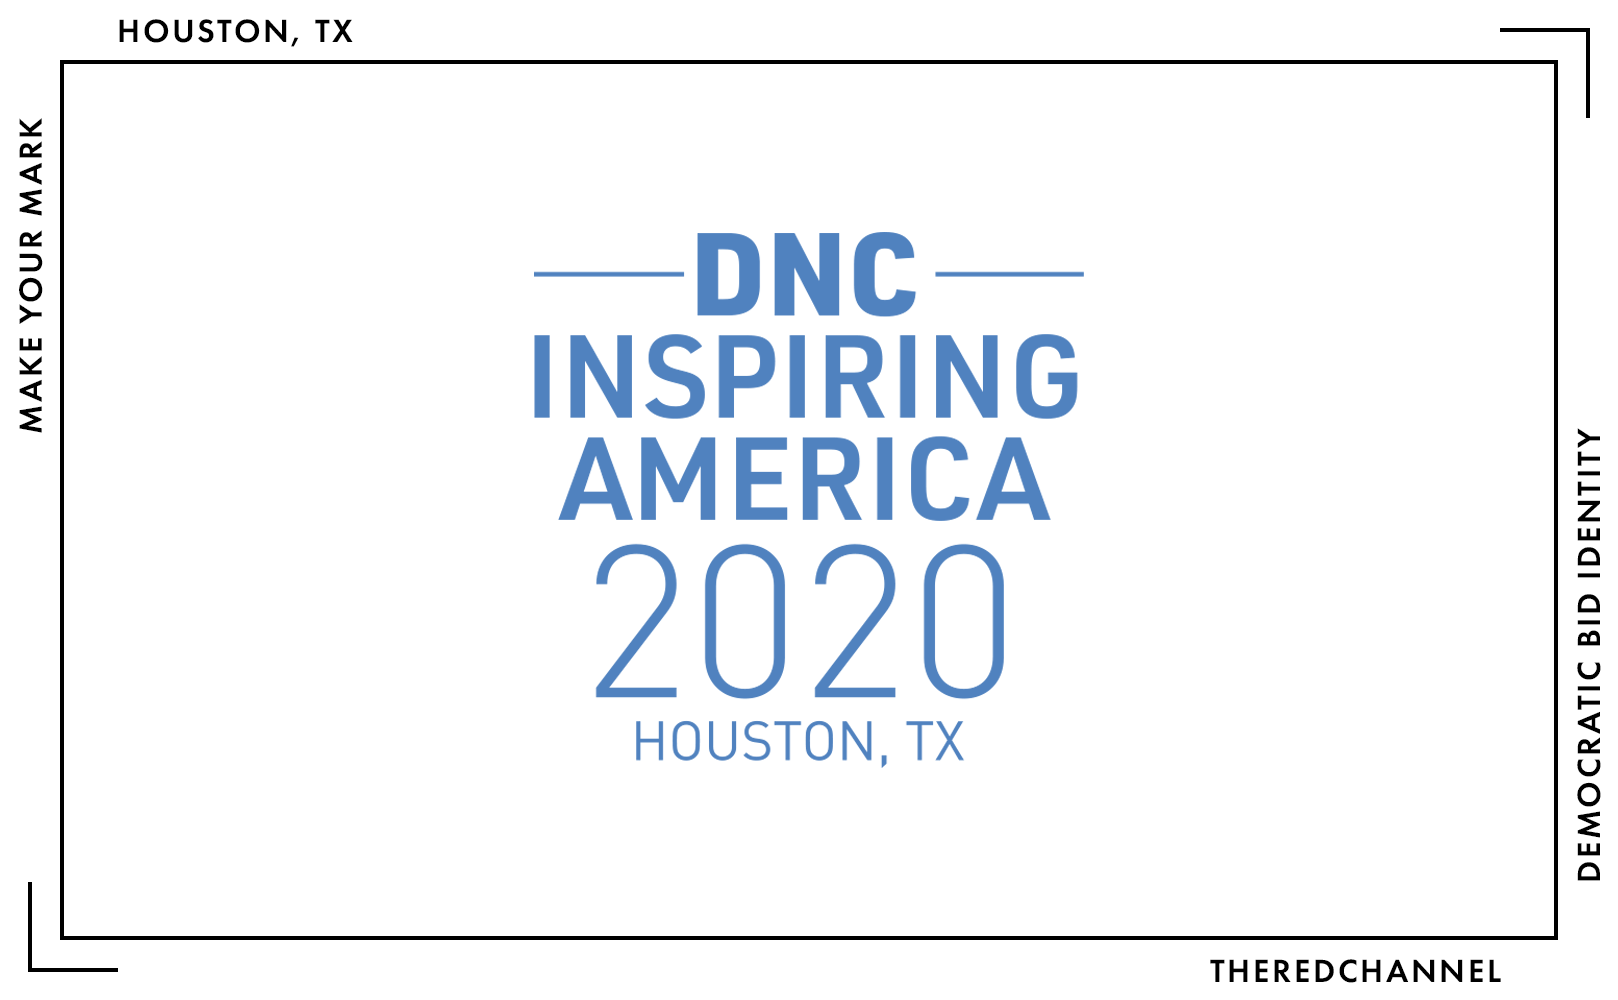 Houston DNC 2020 Logo